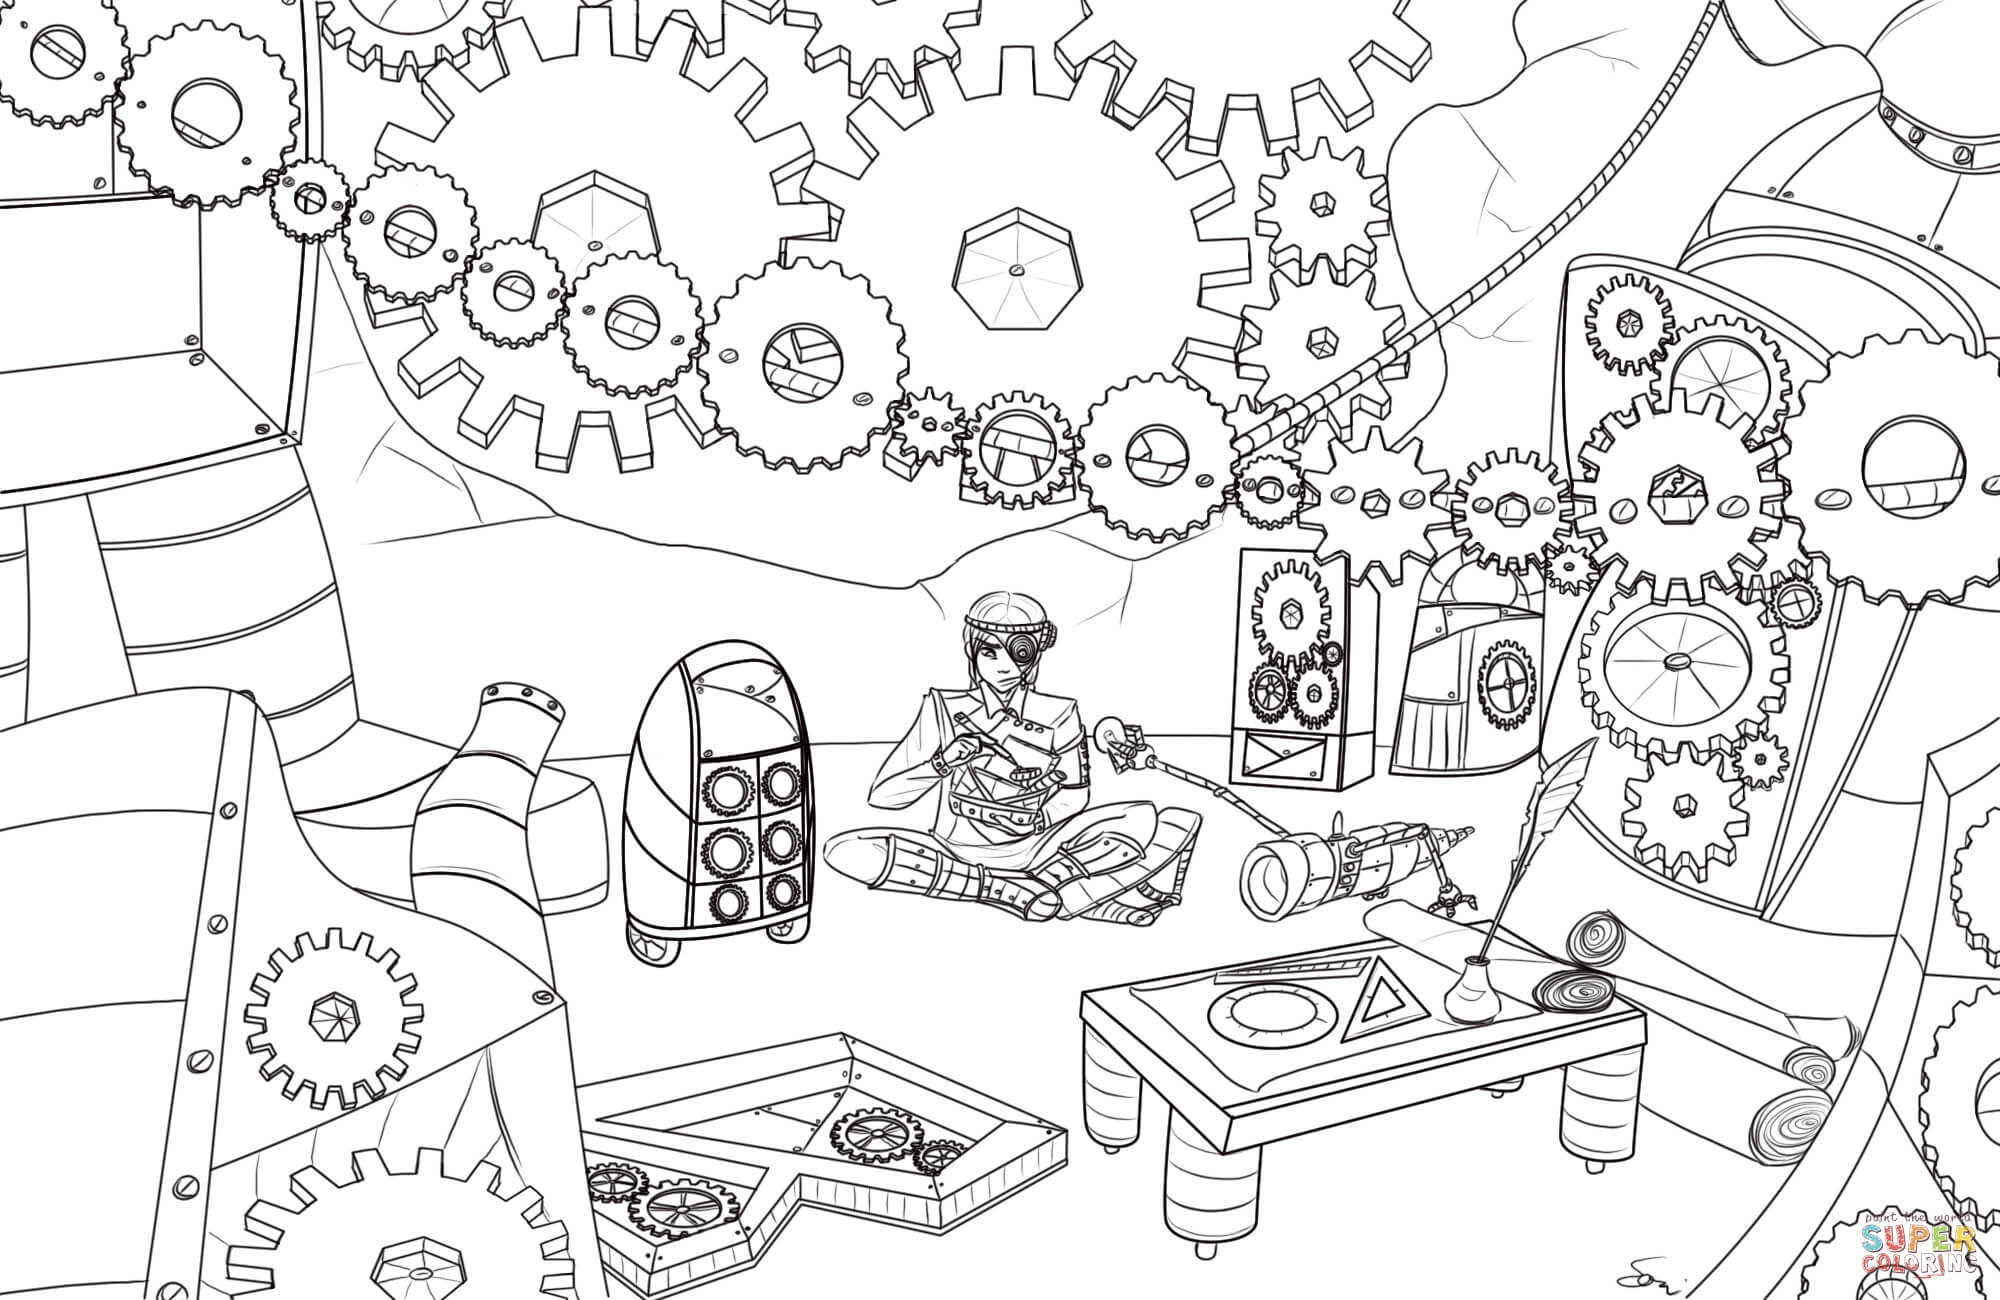 Steampunk Gears Coloring Page | Free Printable Coloring Pages - Free Printable Gears